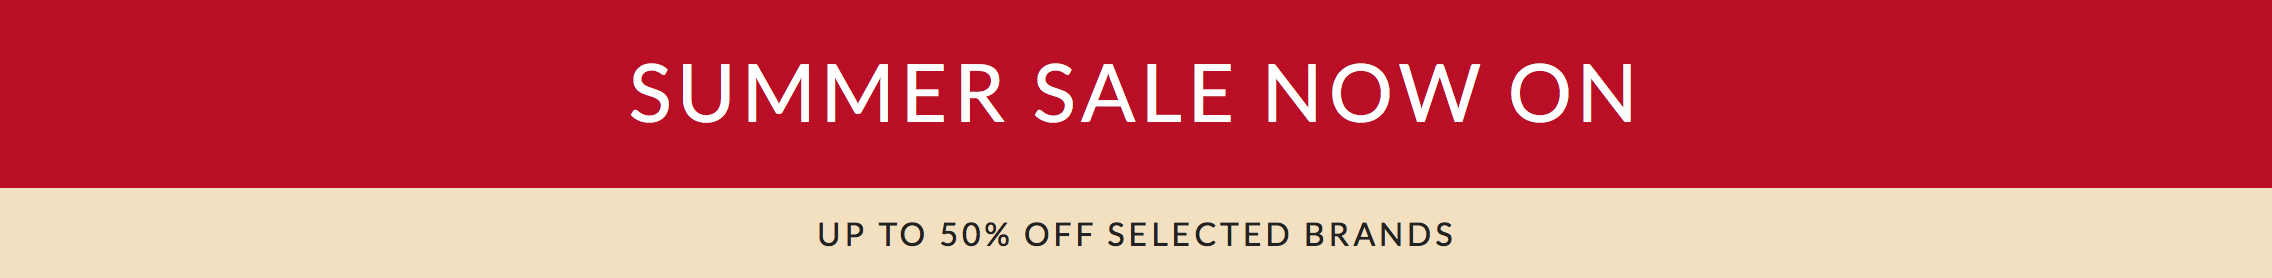 Watch Shop: Sale up to 50% off selected watches brands